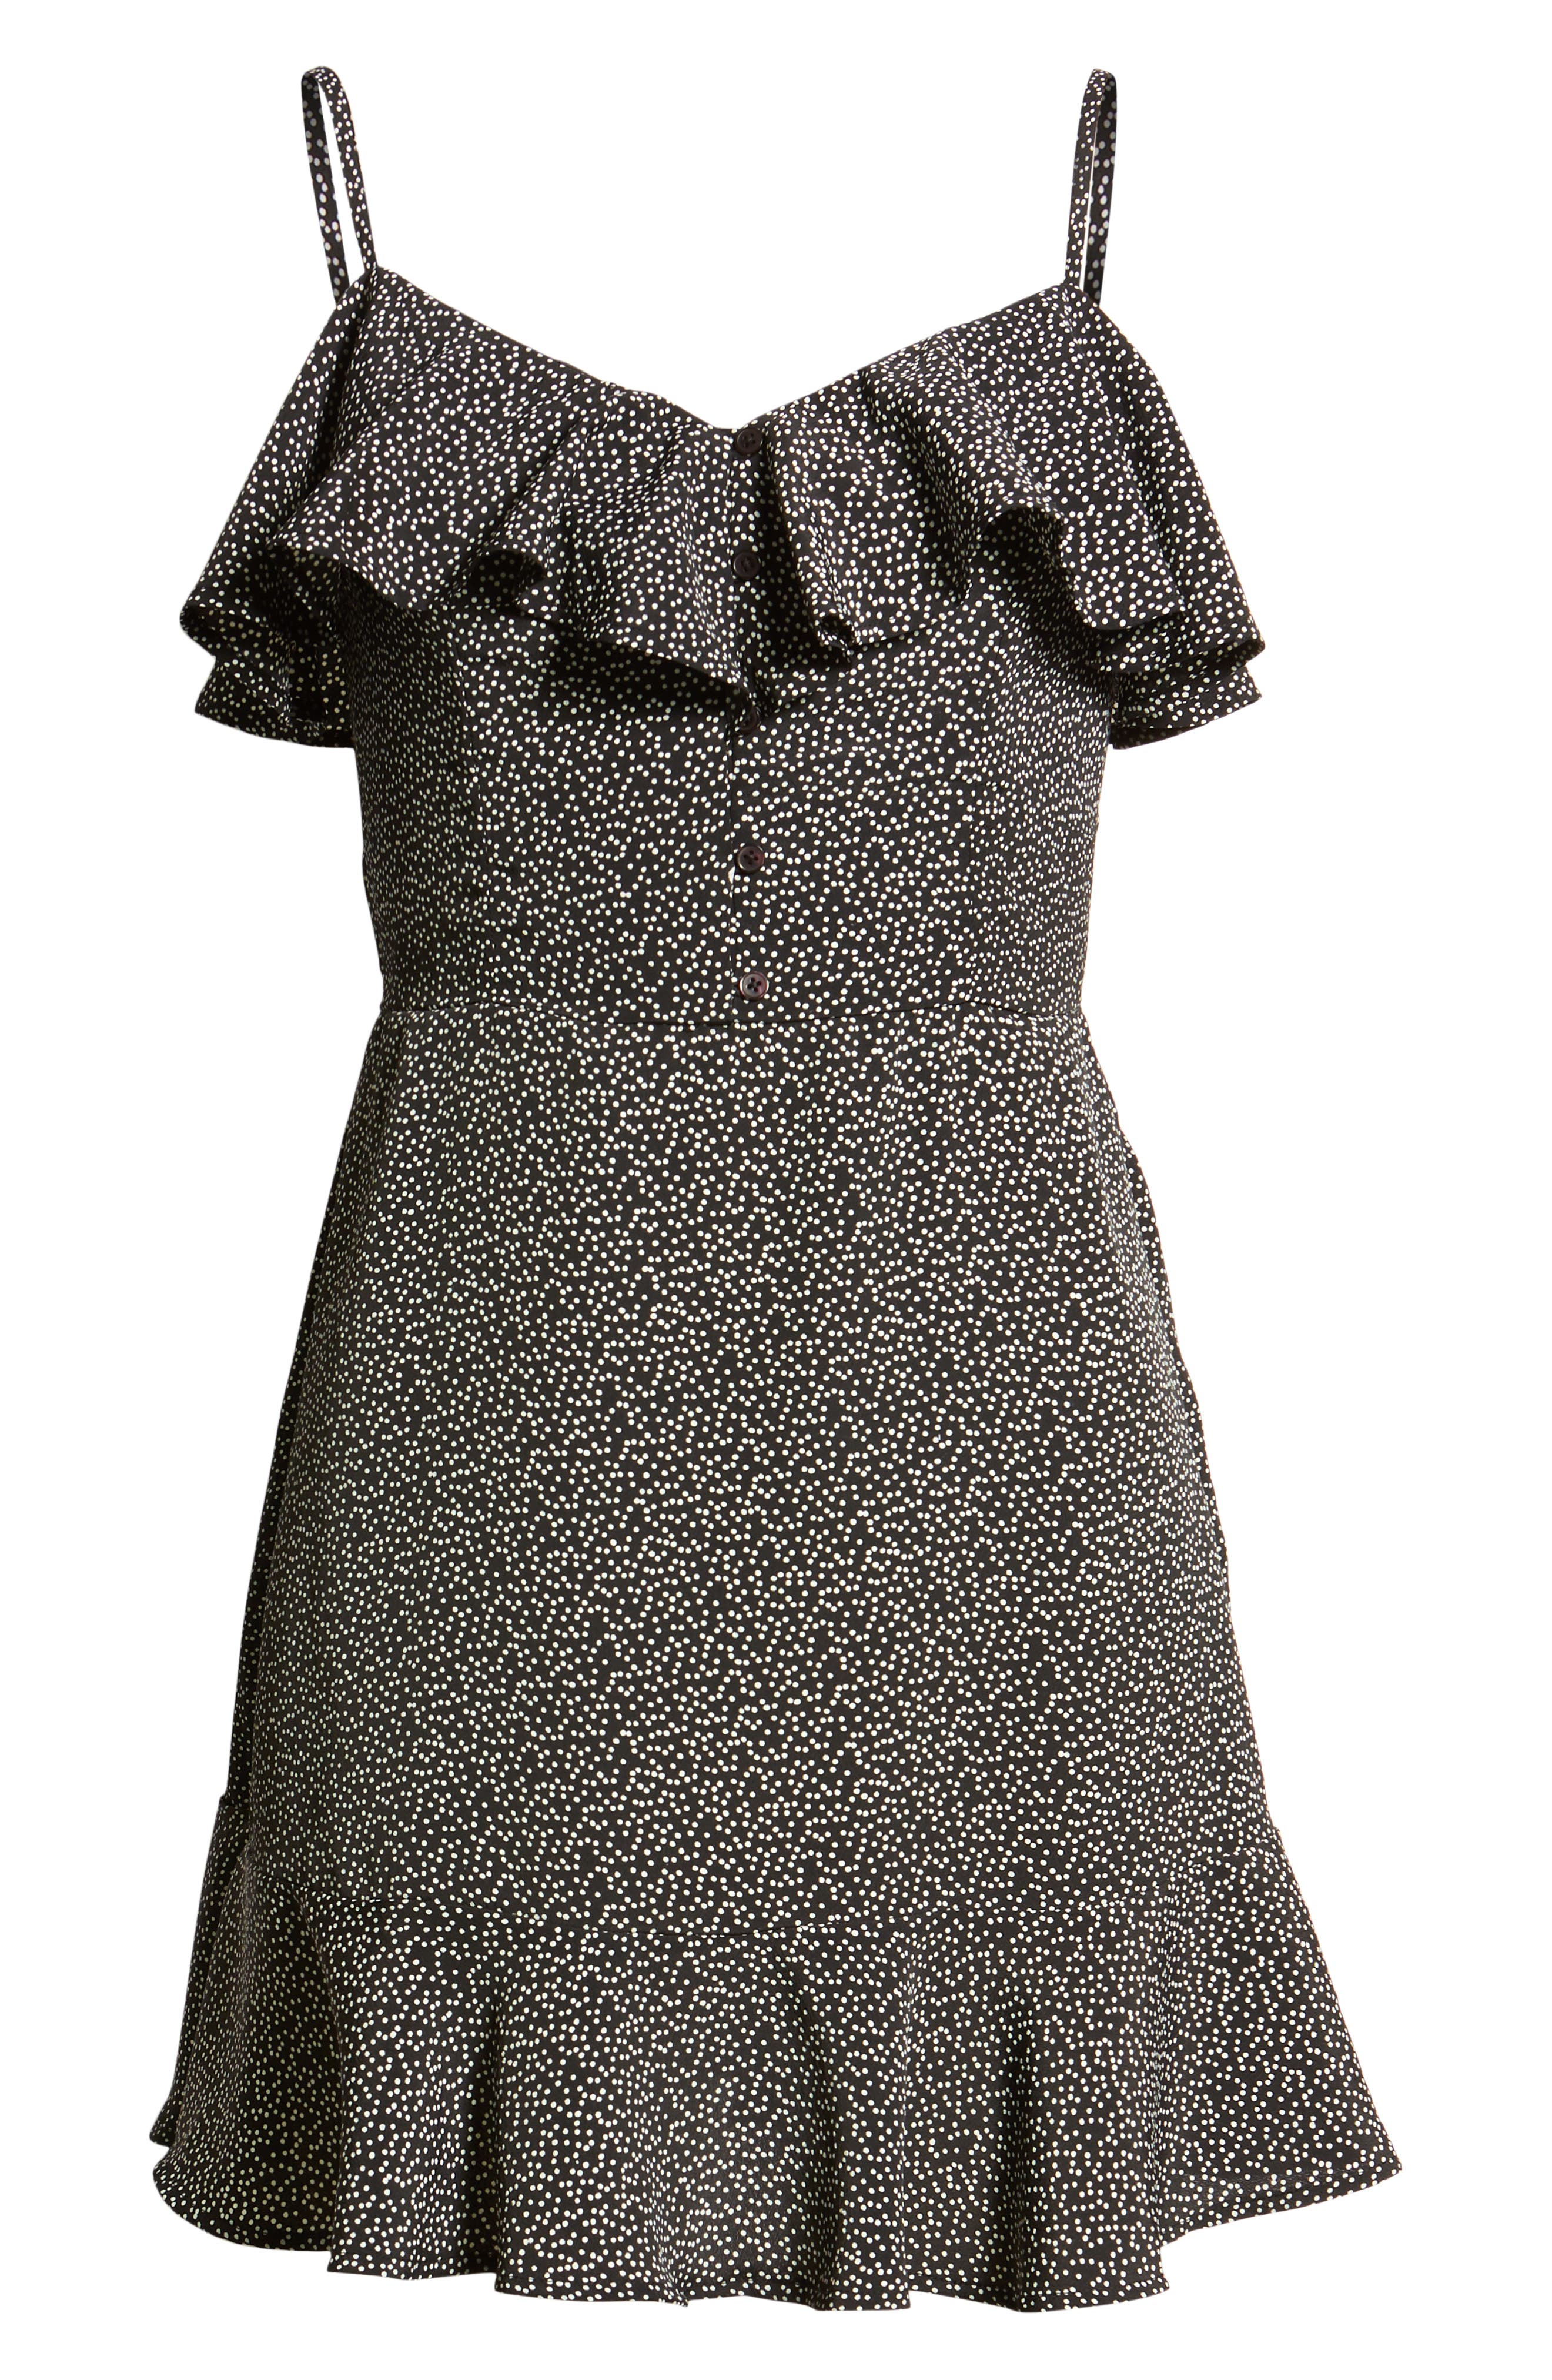 Button Front Frilly Dot Dress,                             Alternate thumbnail 7, color,                             001